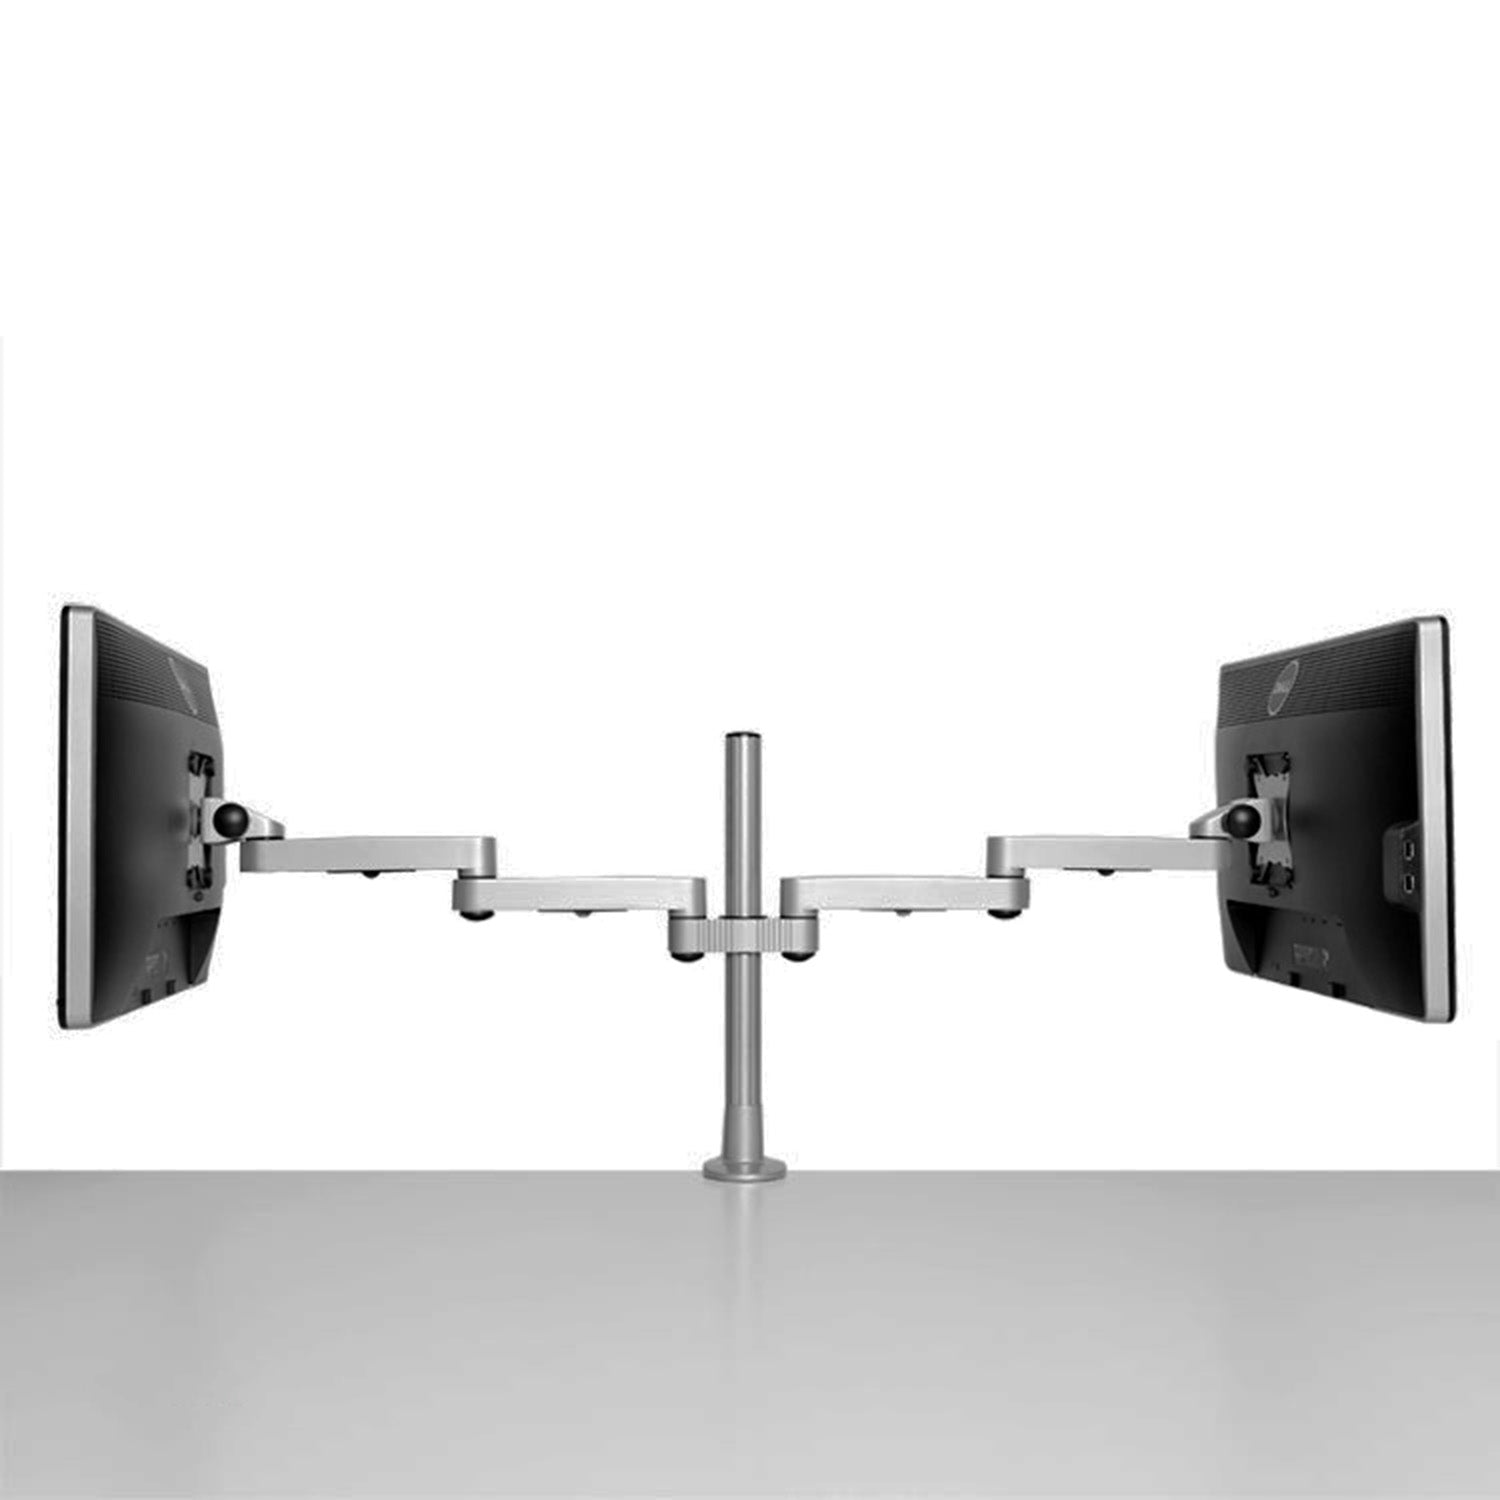 through ceiling product monitor with humanscale fixed arm d link angled mount bolt and dynamic base